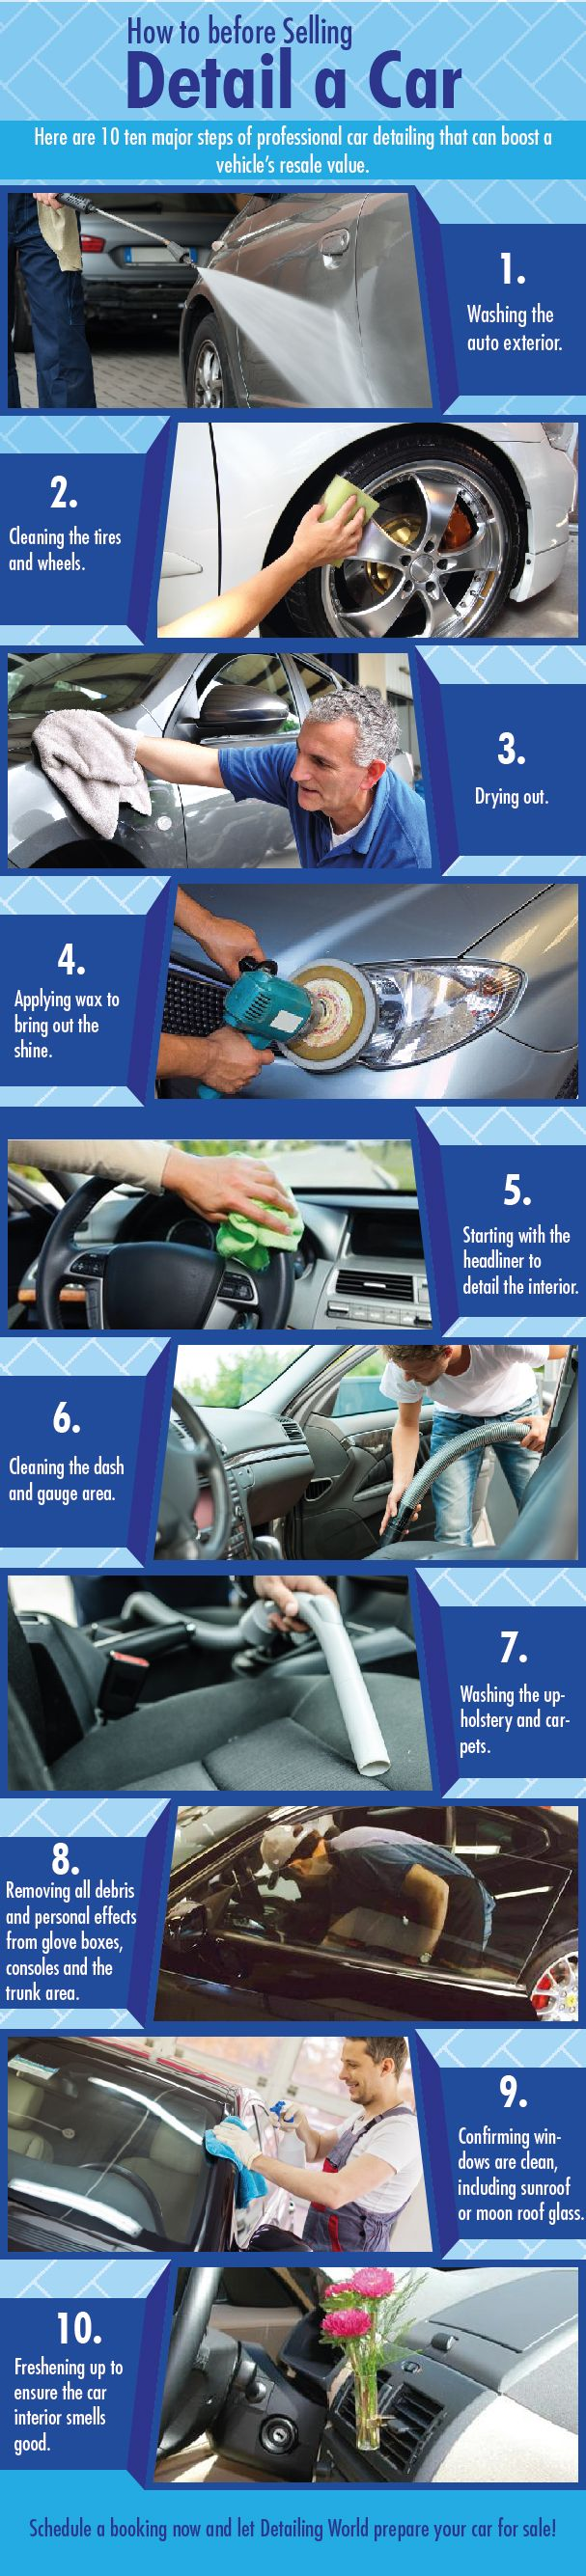 How to detail a car before selling